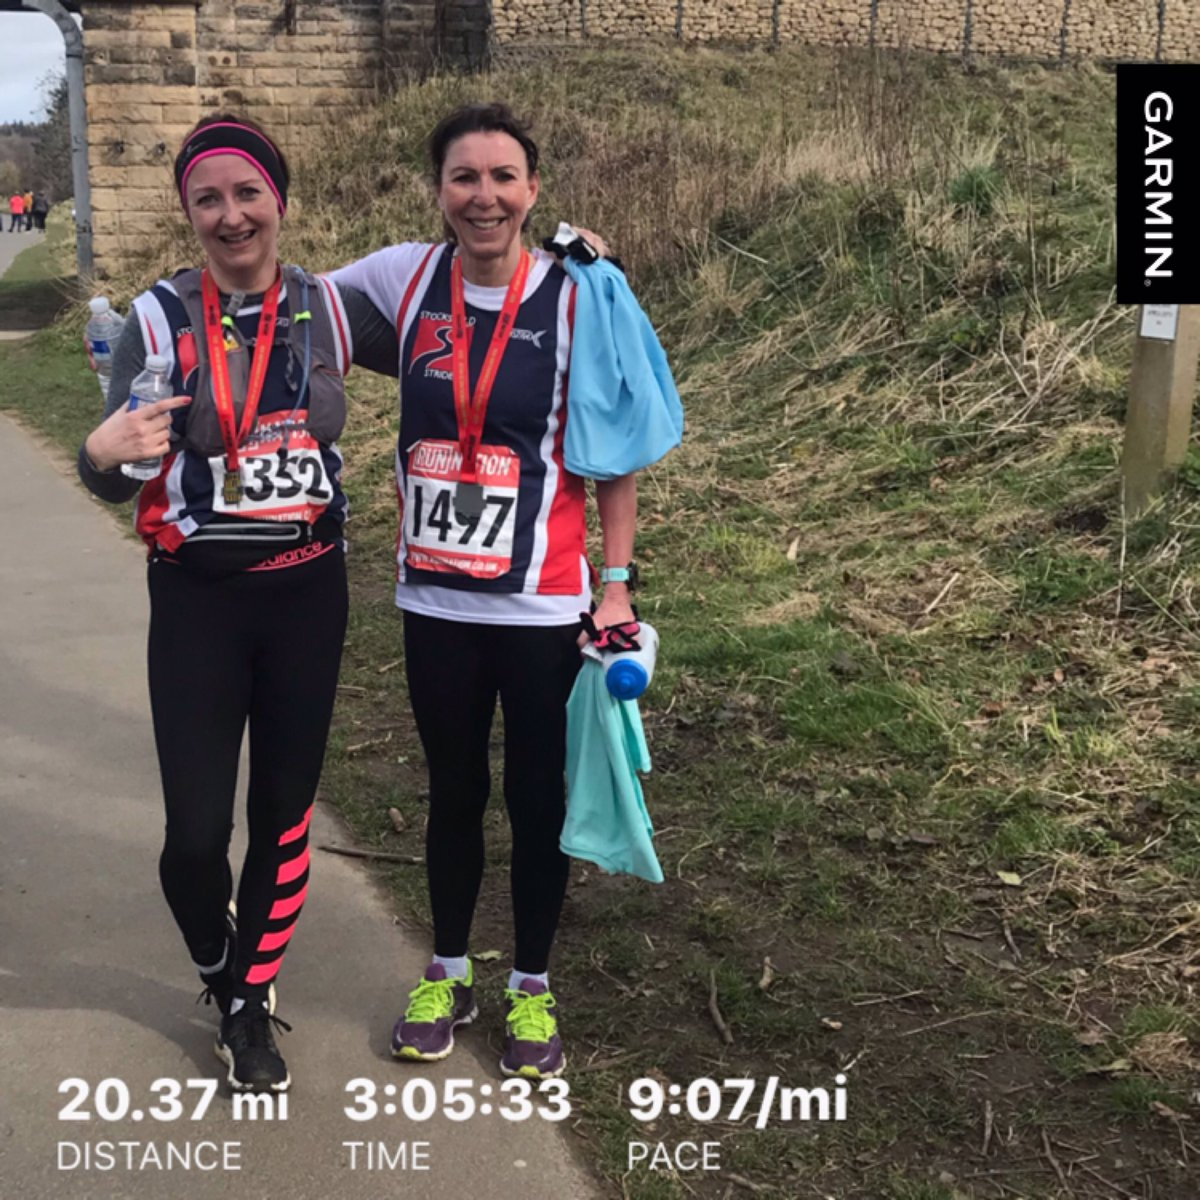 Big Northumberland 20 miler. Think it'll be the last organised race for a while, uncertain scary times ahead. #runnation #keeprunning #scarytimespic.twitter.com/peGW4r3Ha4